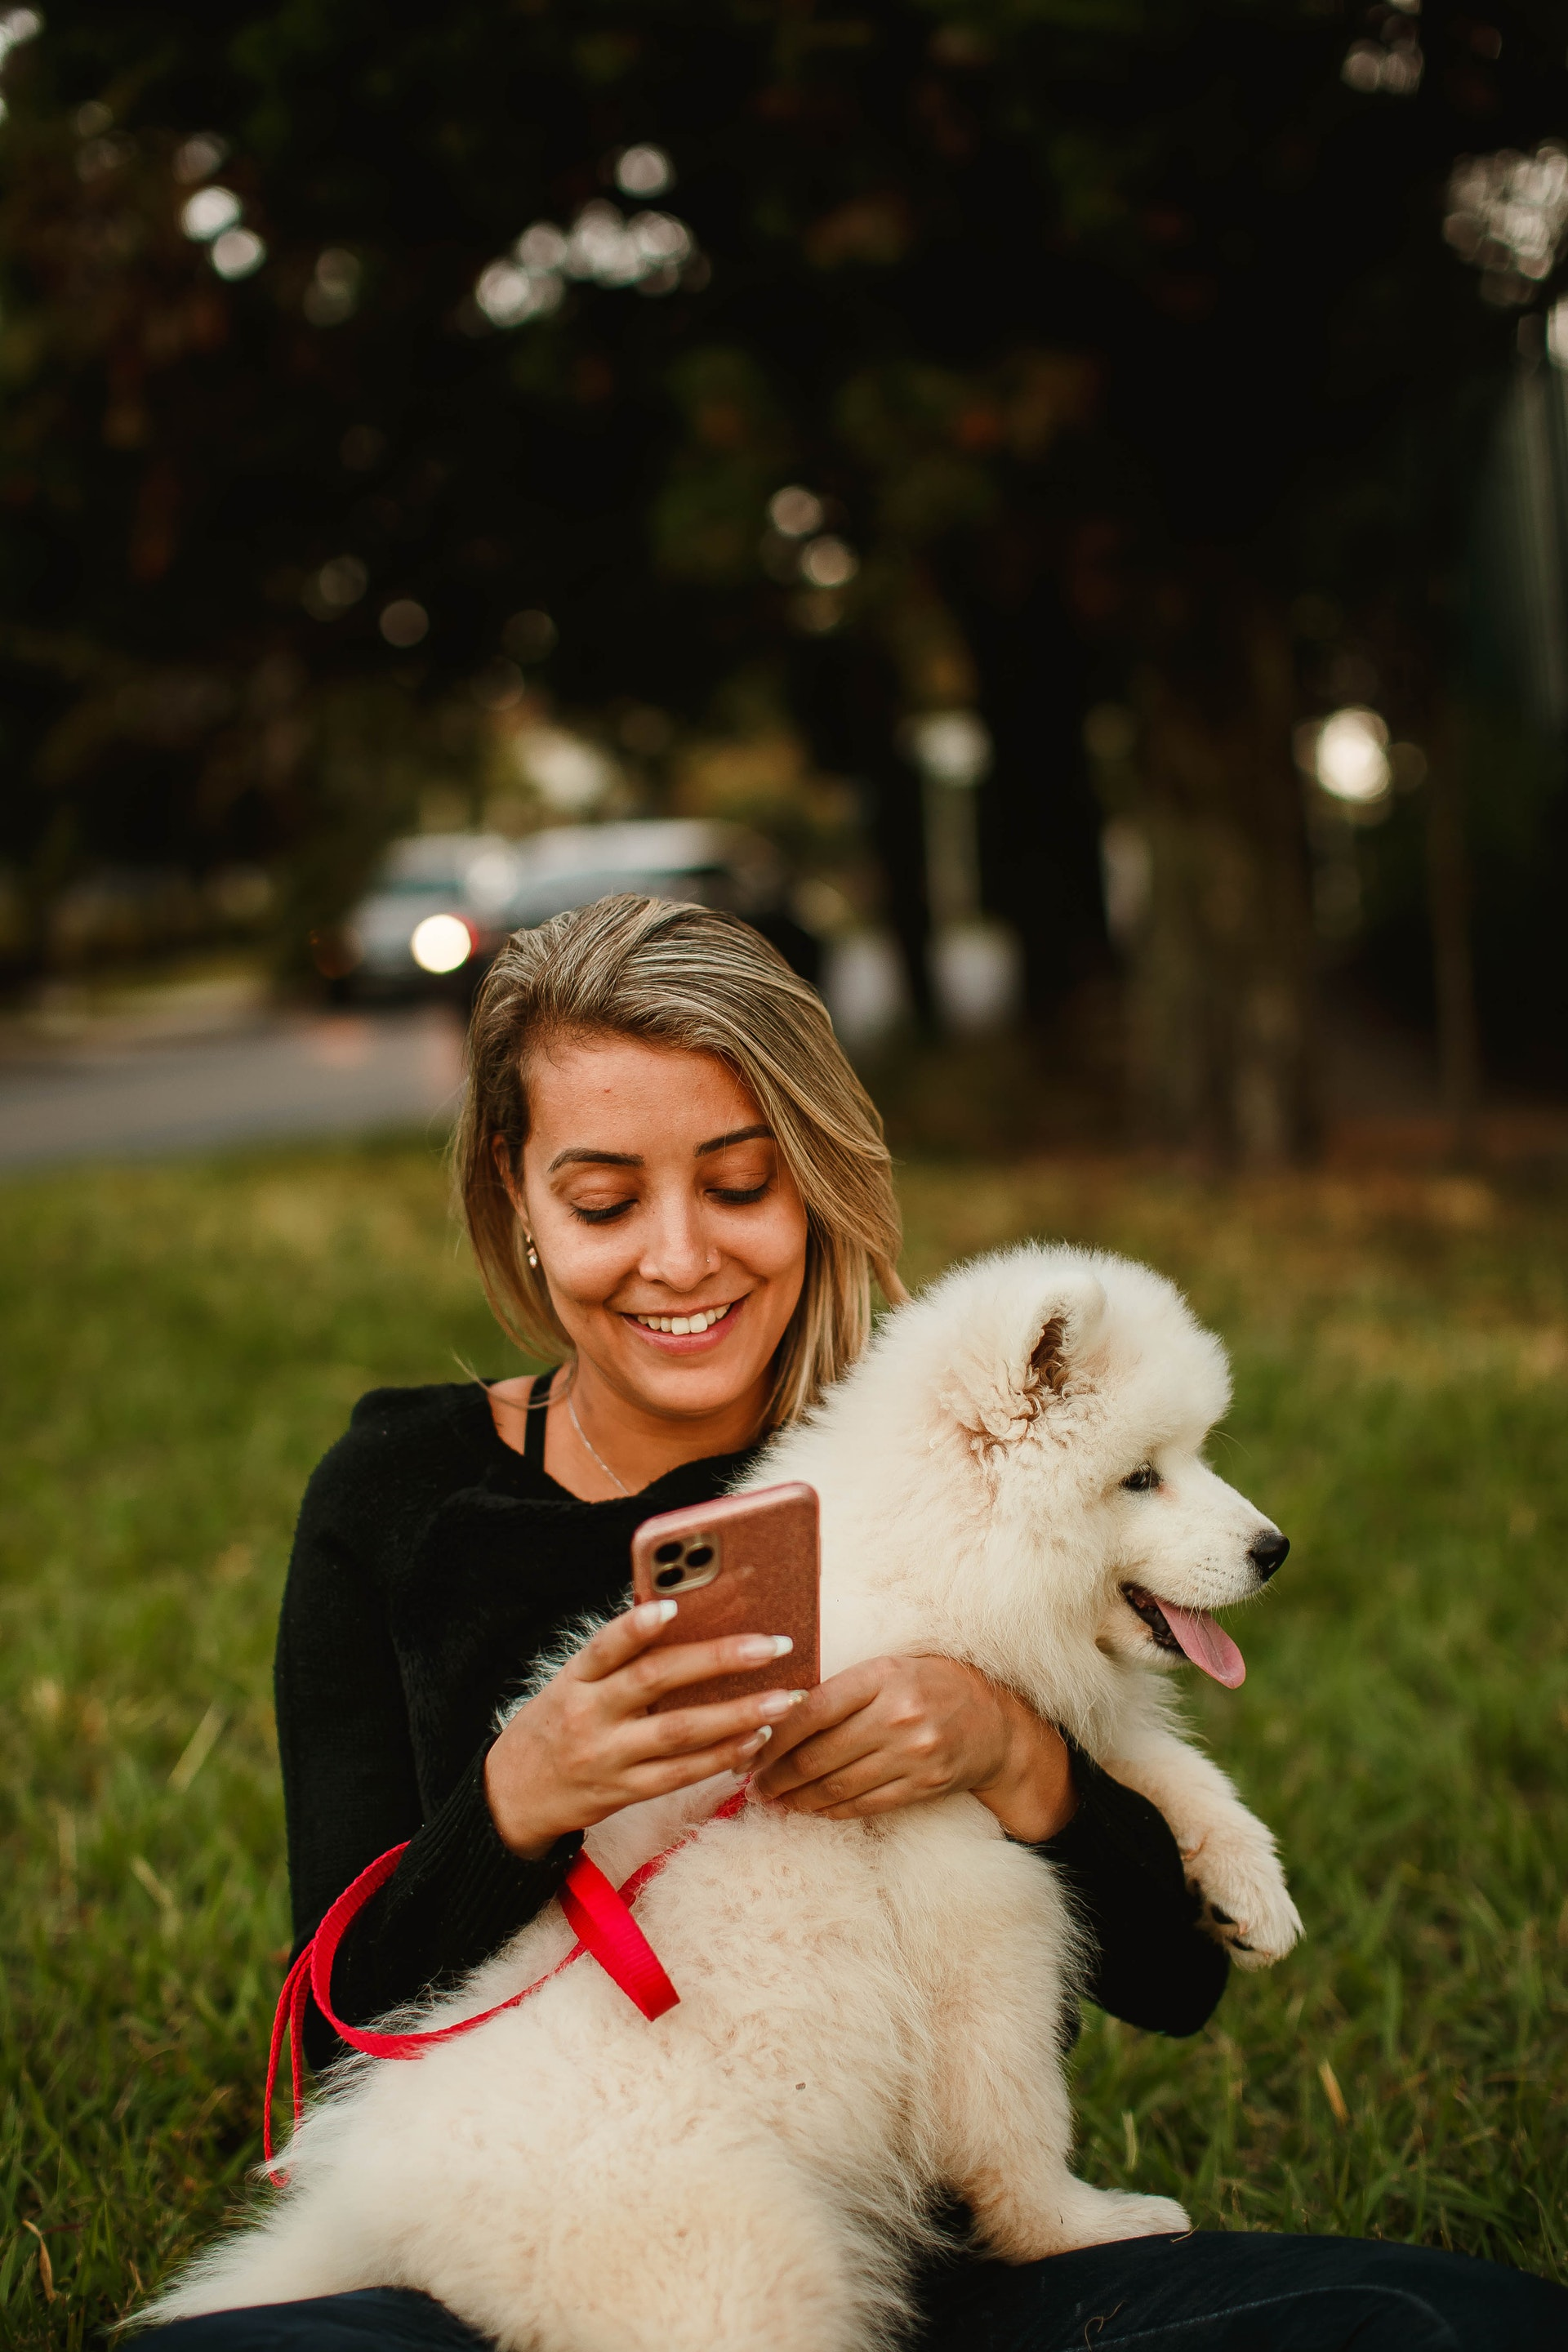 woman holding her dog in a park